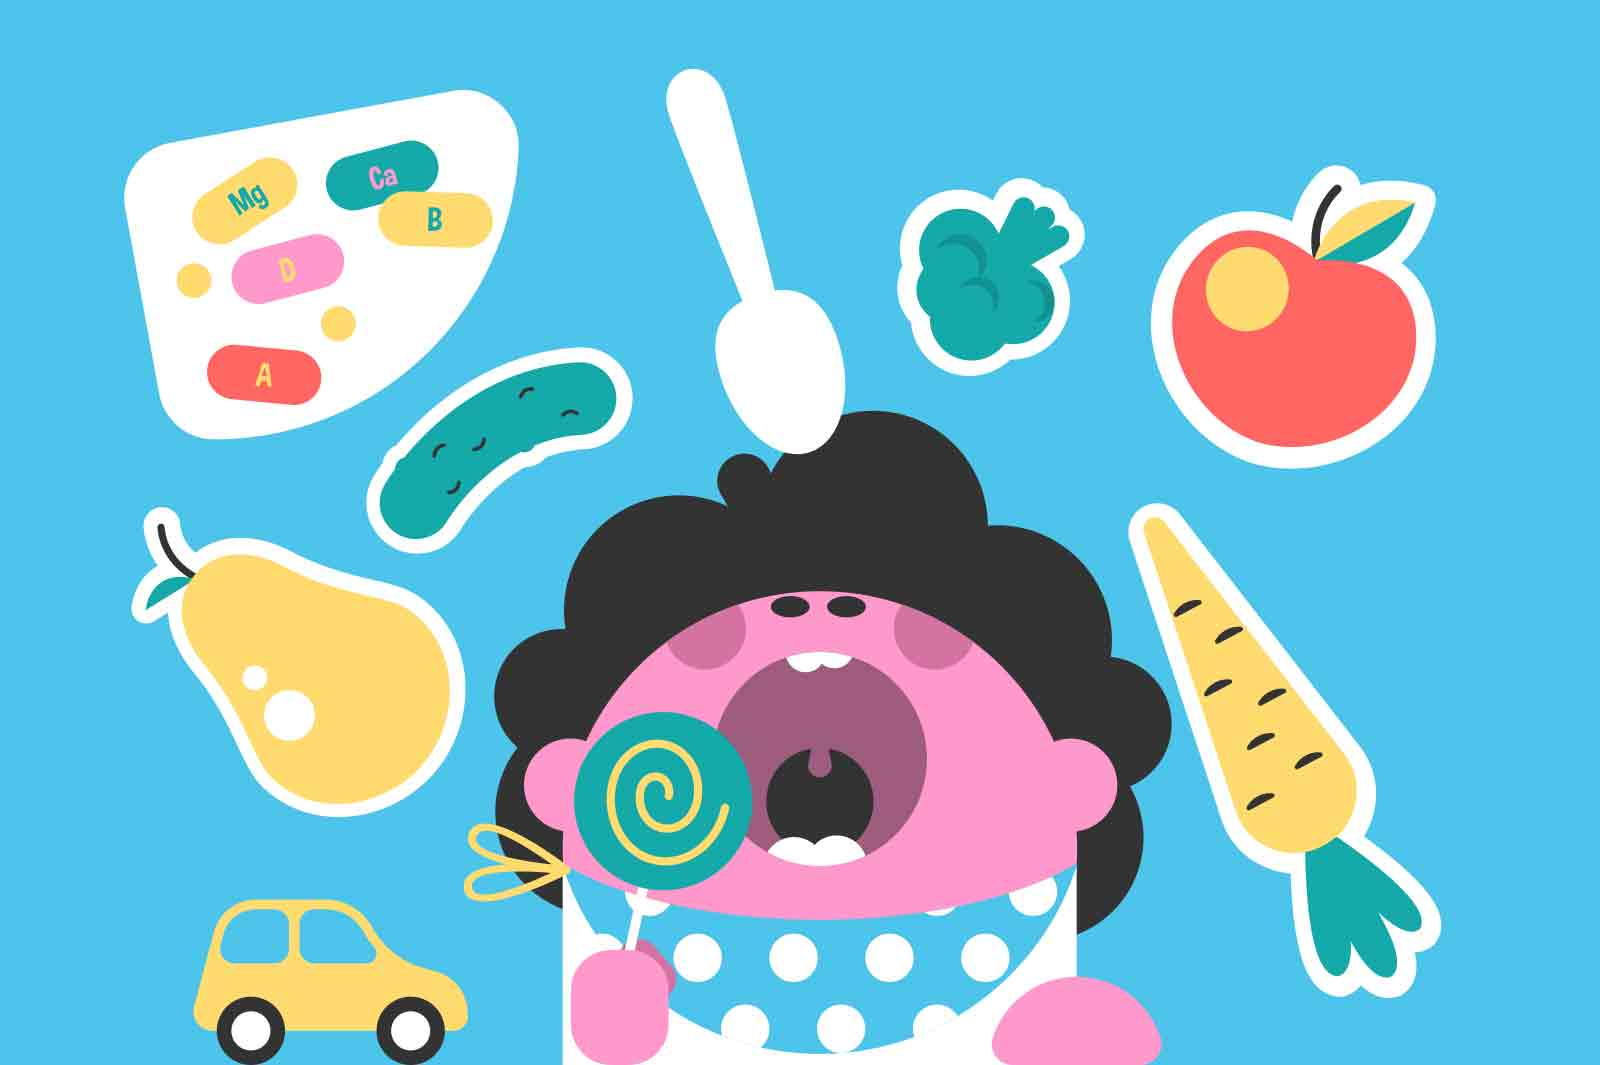 Baby open mouth to take vitamin vector illustration. Healthy nutrition for kid flat style. Vitaminized eating, vegetable and fruit concept